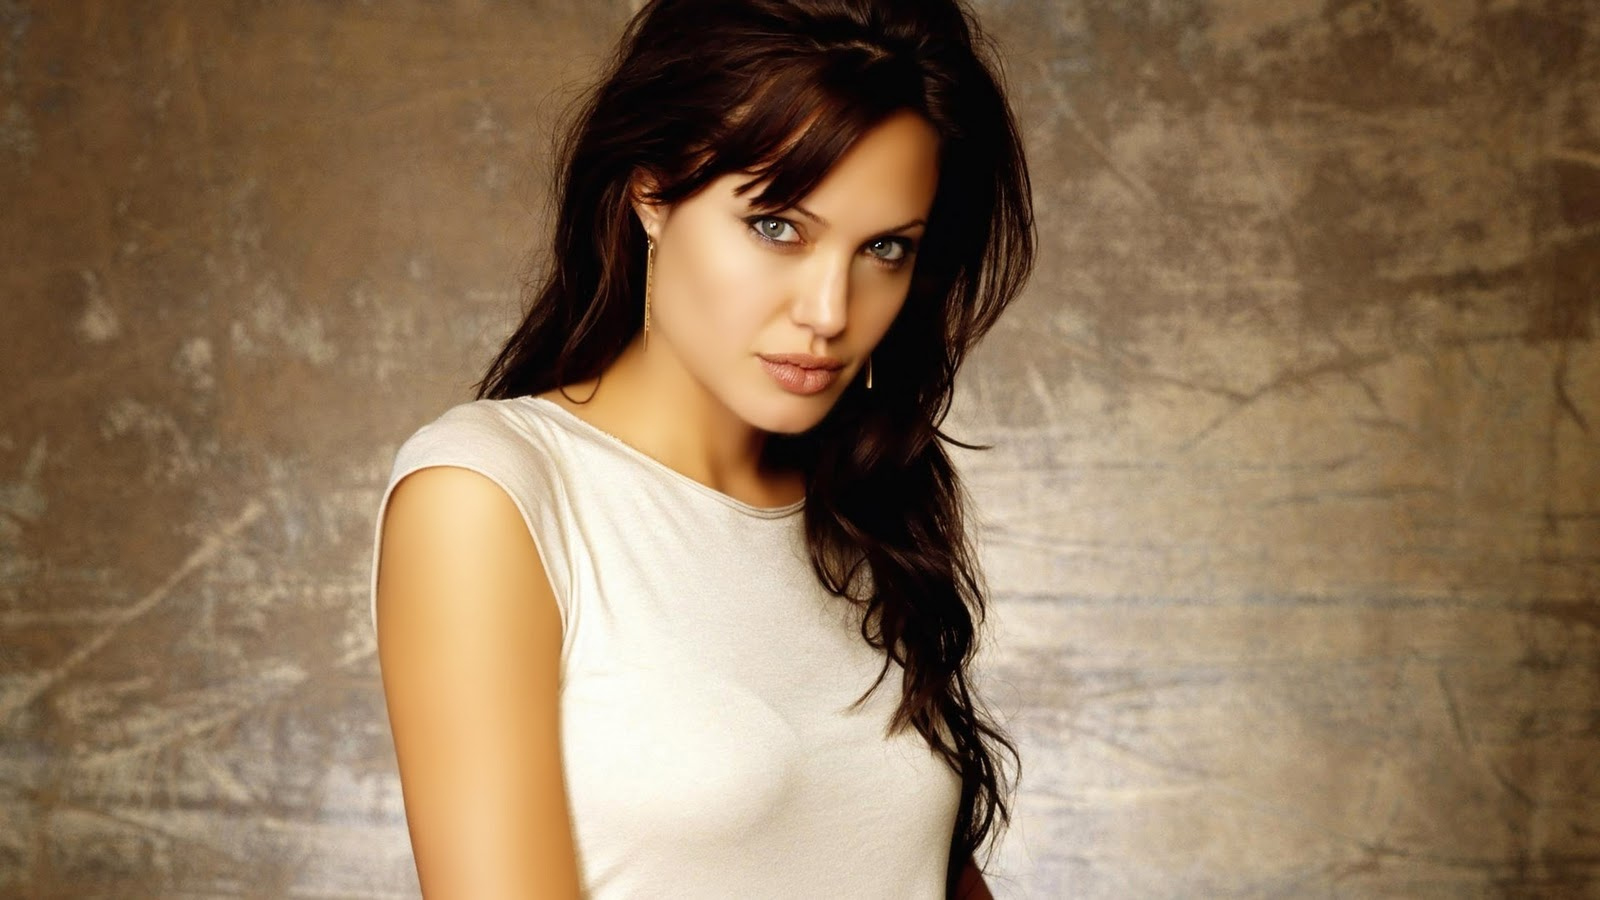 Hd wallpaper ladies - Angelina Jolie Wallpaper Hd